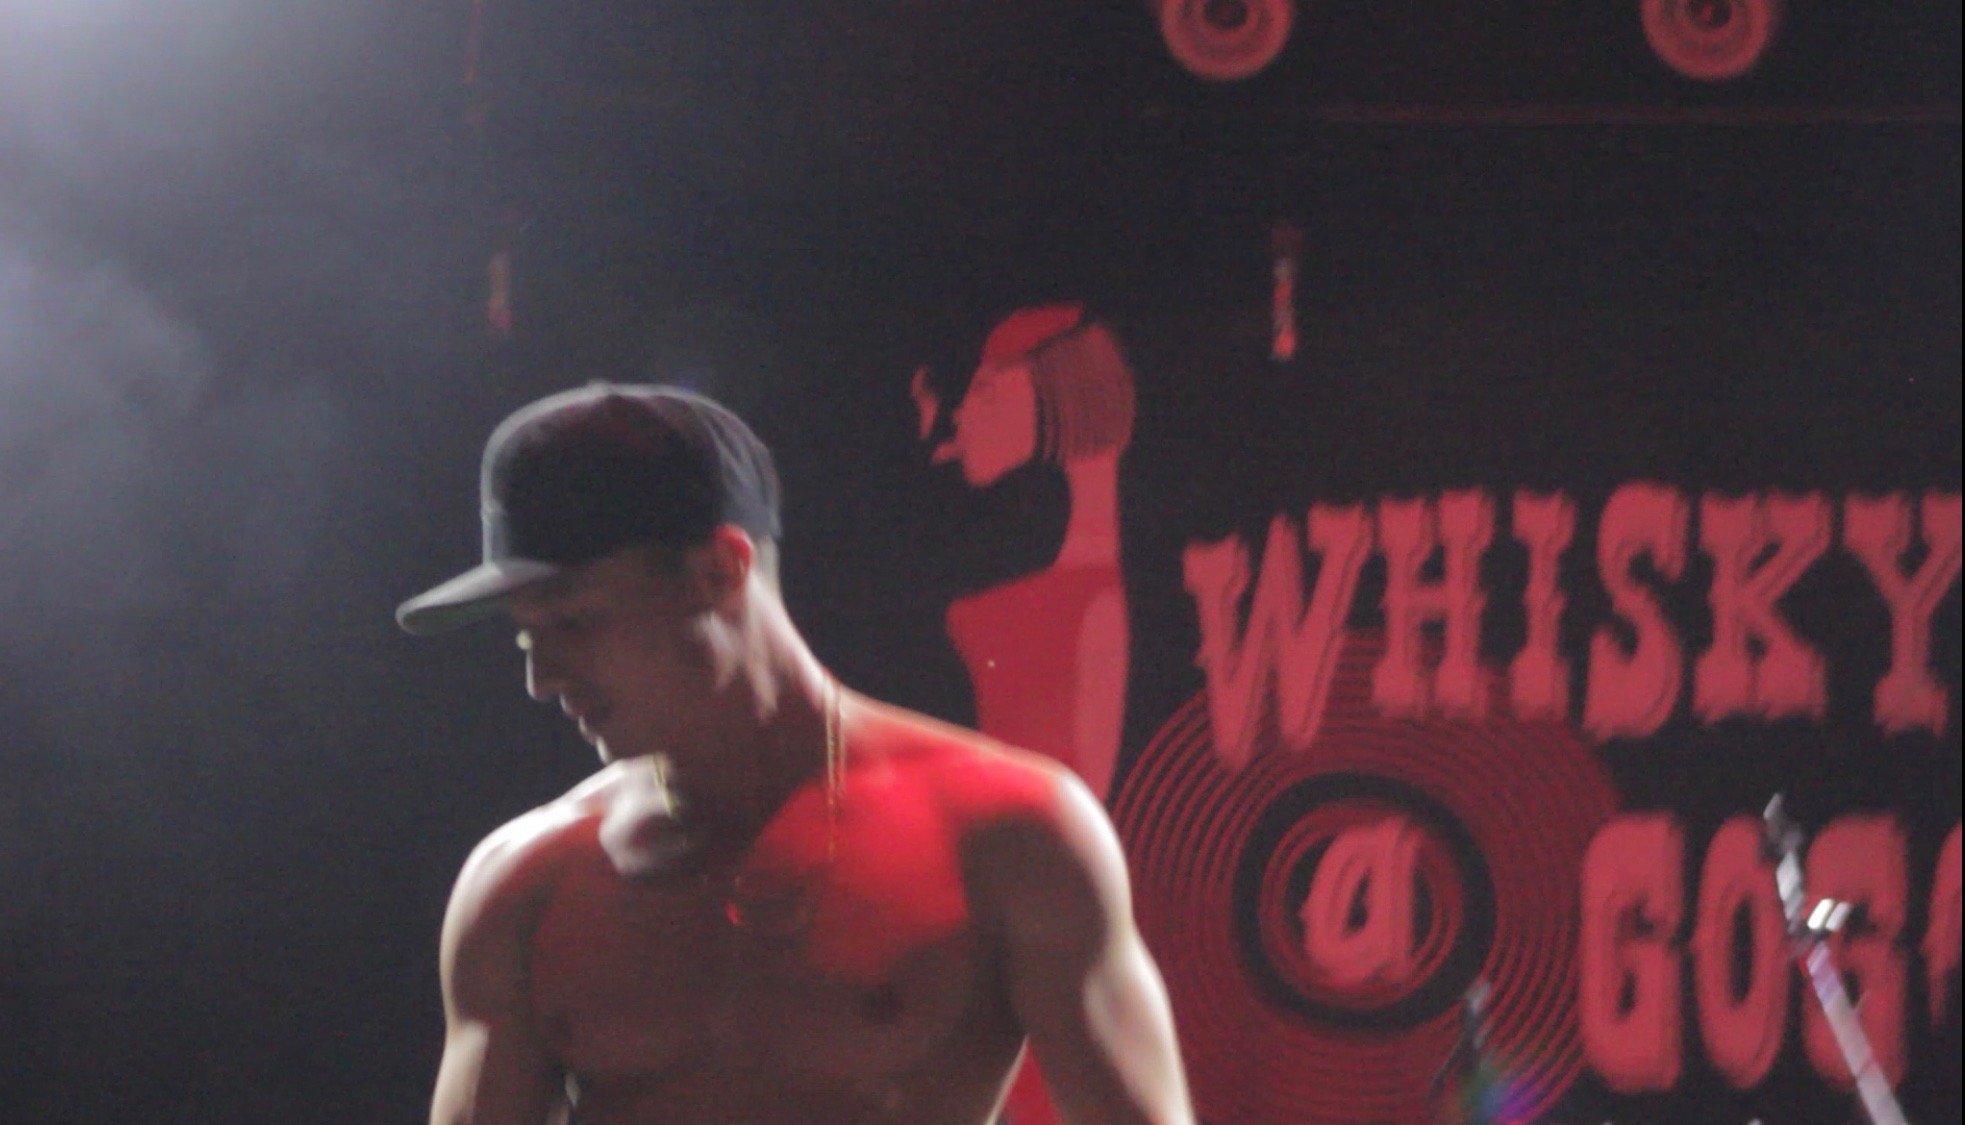 Leon Budrow shirtless on stage at The Whisky a Go Go